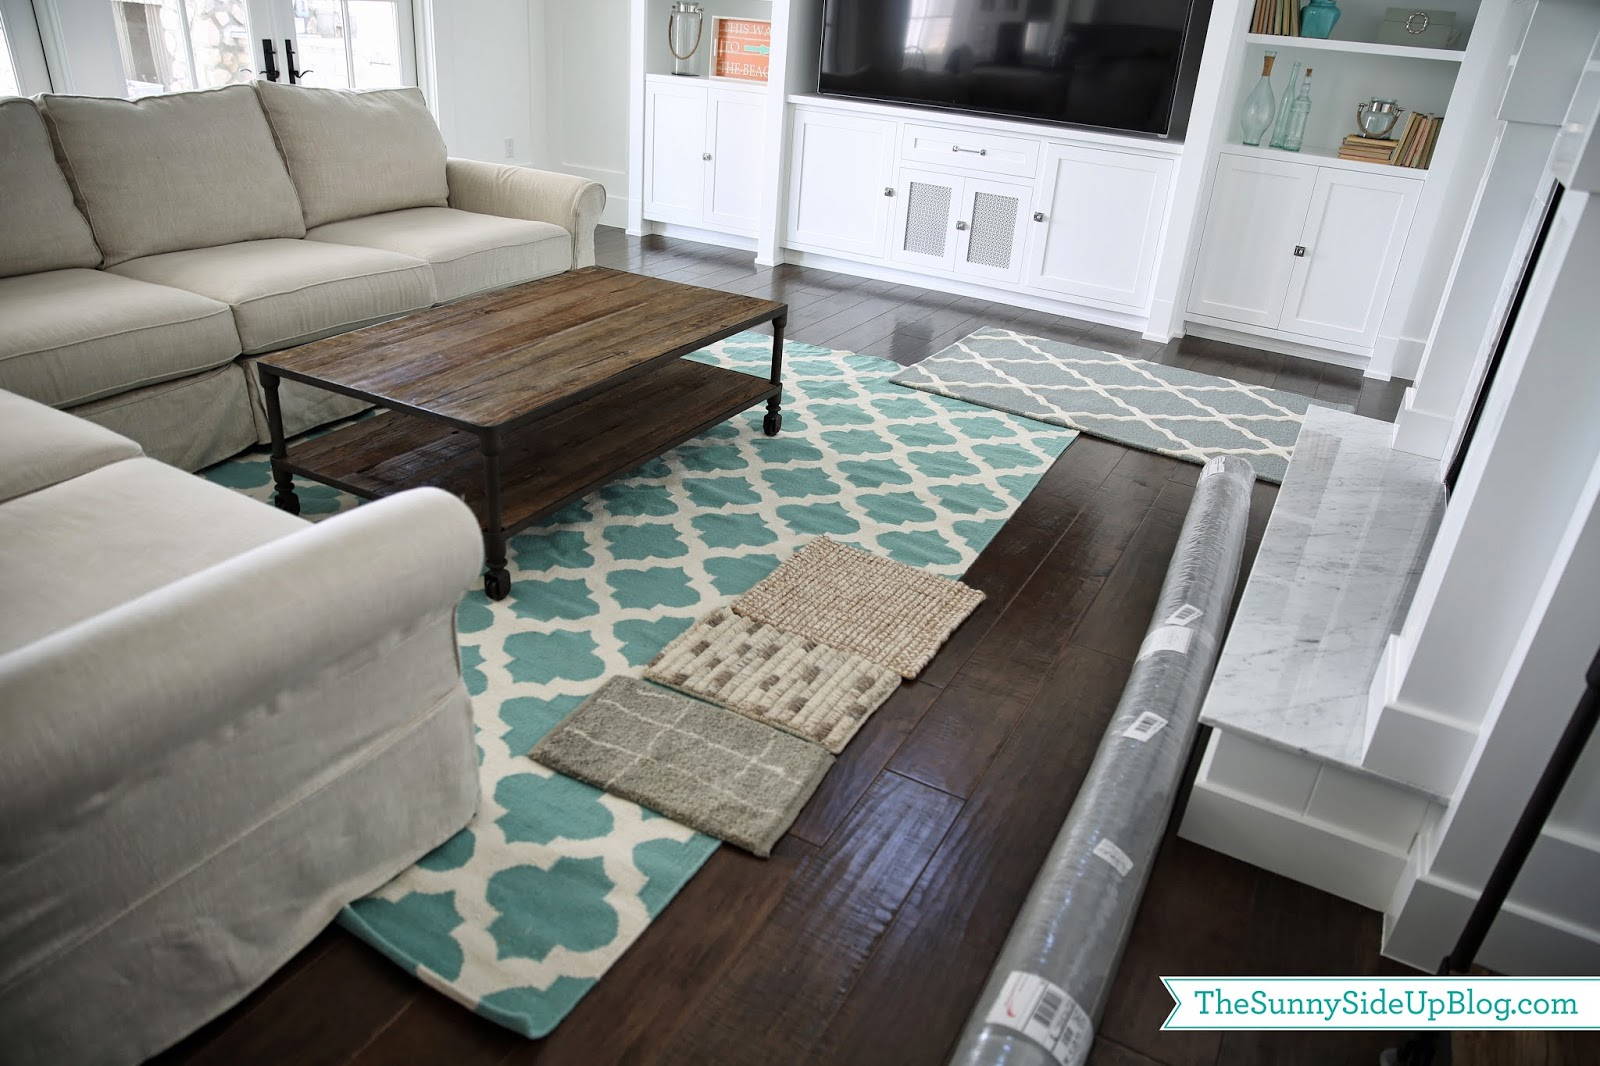 Family Room Decor Update! - The Sunny Side Up Blog